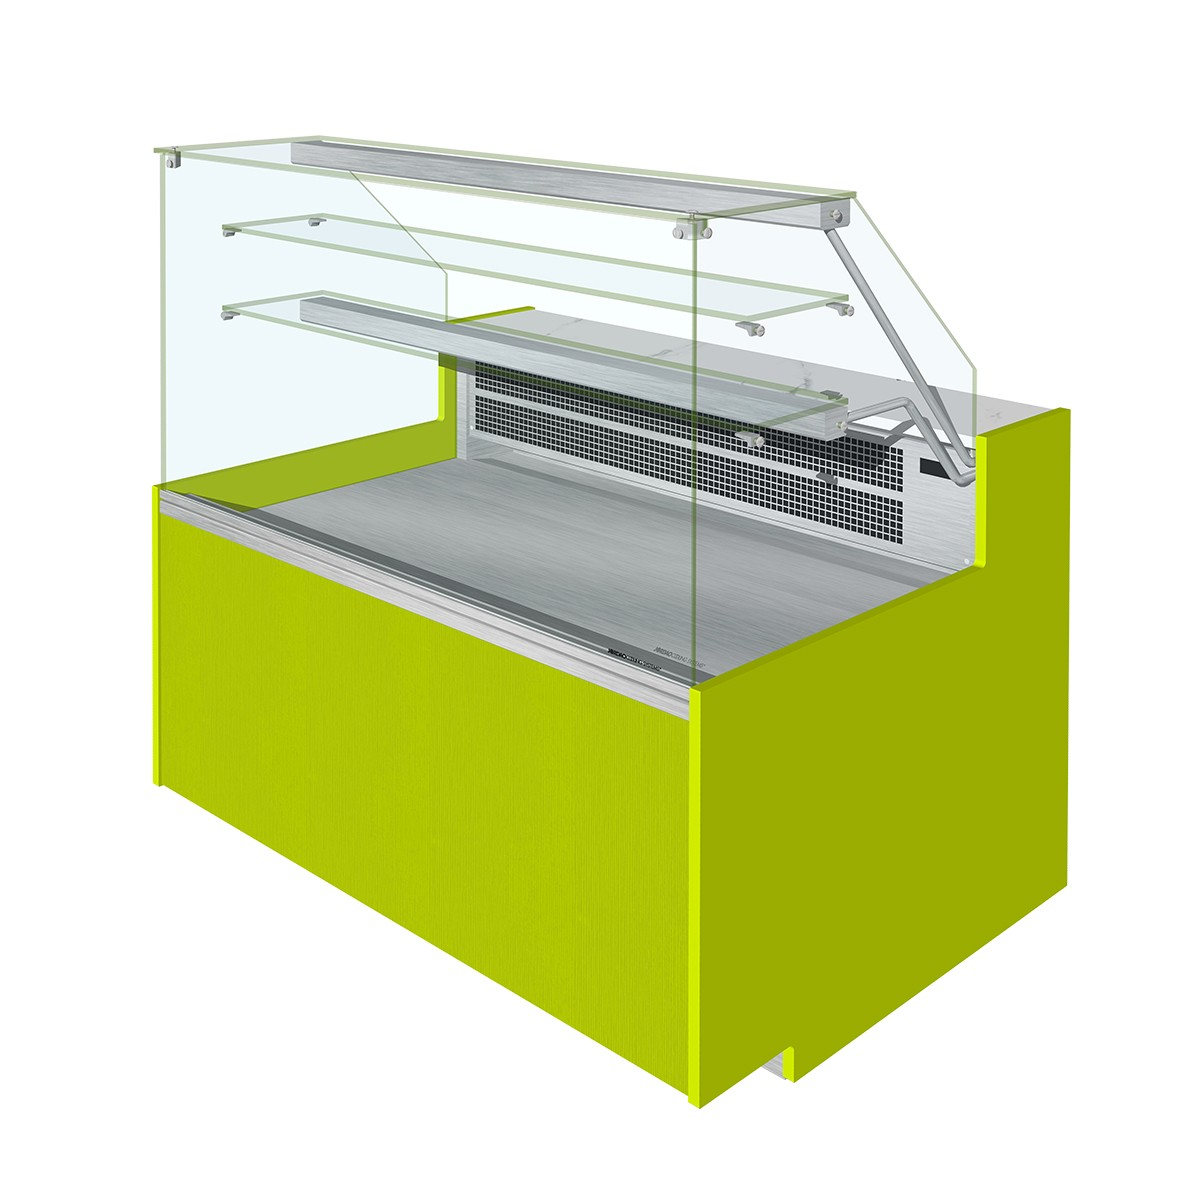 ELINE Flat Glass Serve Over Display Fan Assisted No Understorage